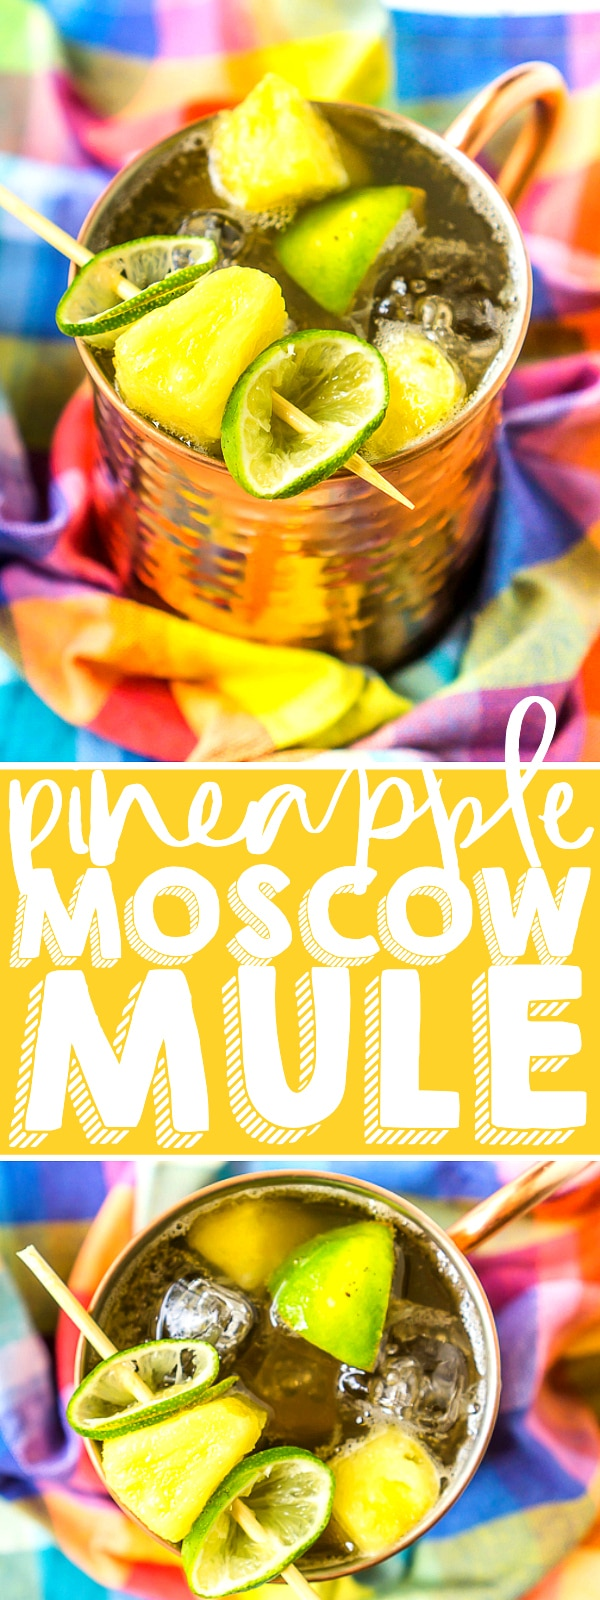 Go tropical with this Pineapple Moscow Mule Recipe for a refreshing take on the classic for a a delicious citrus Moscow mule recipe. Enjoy this perfect summer cocktail with pineapple juice, freshly squeezed limes, and spicy ginger beer poolside this weekend! | THE LOVE NERDS #cocktailrecipe #summerdrinks #pineapplecocktail